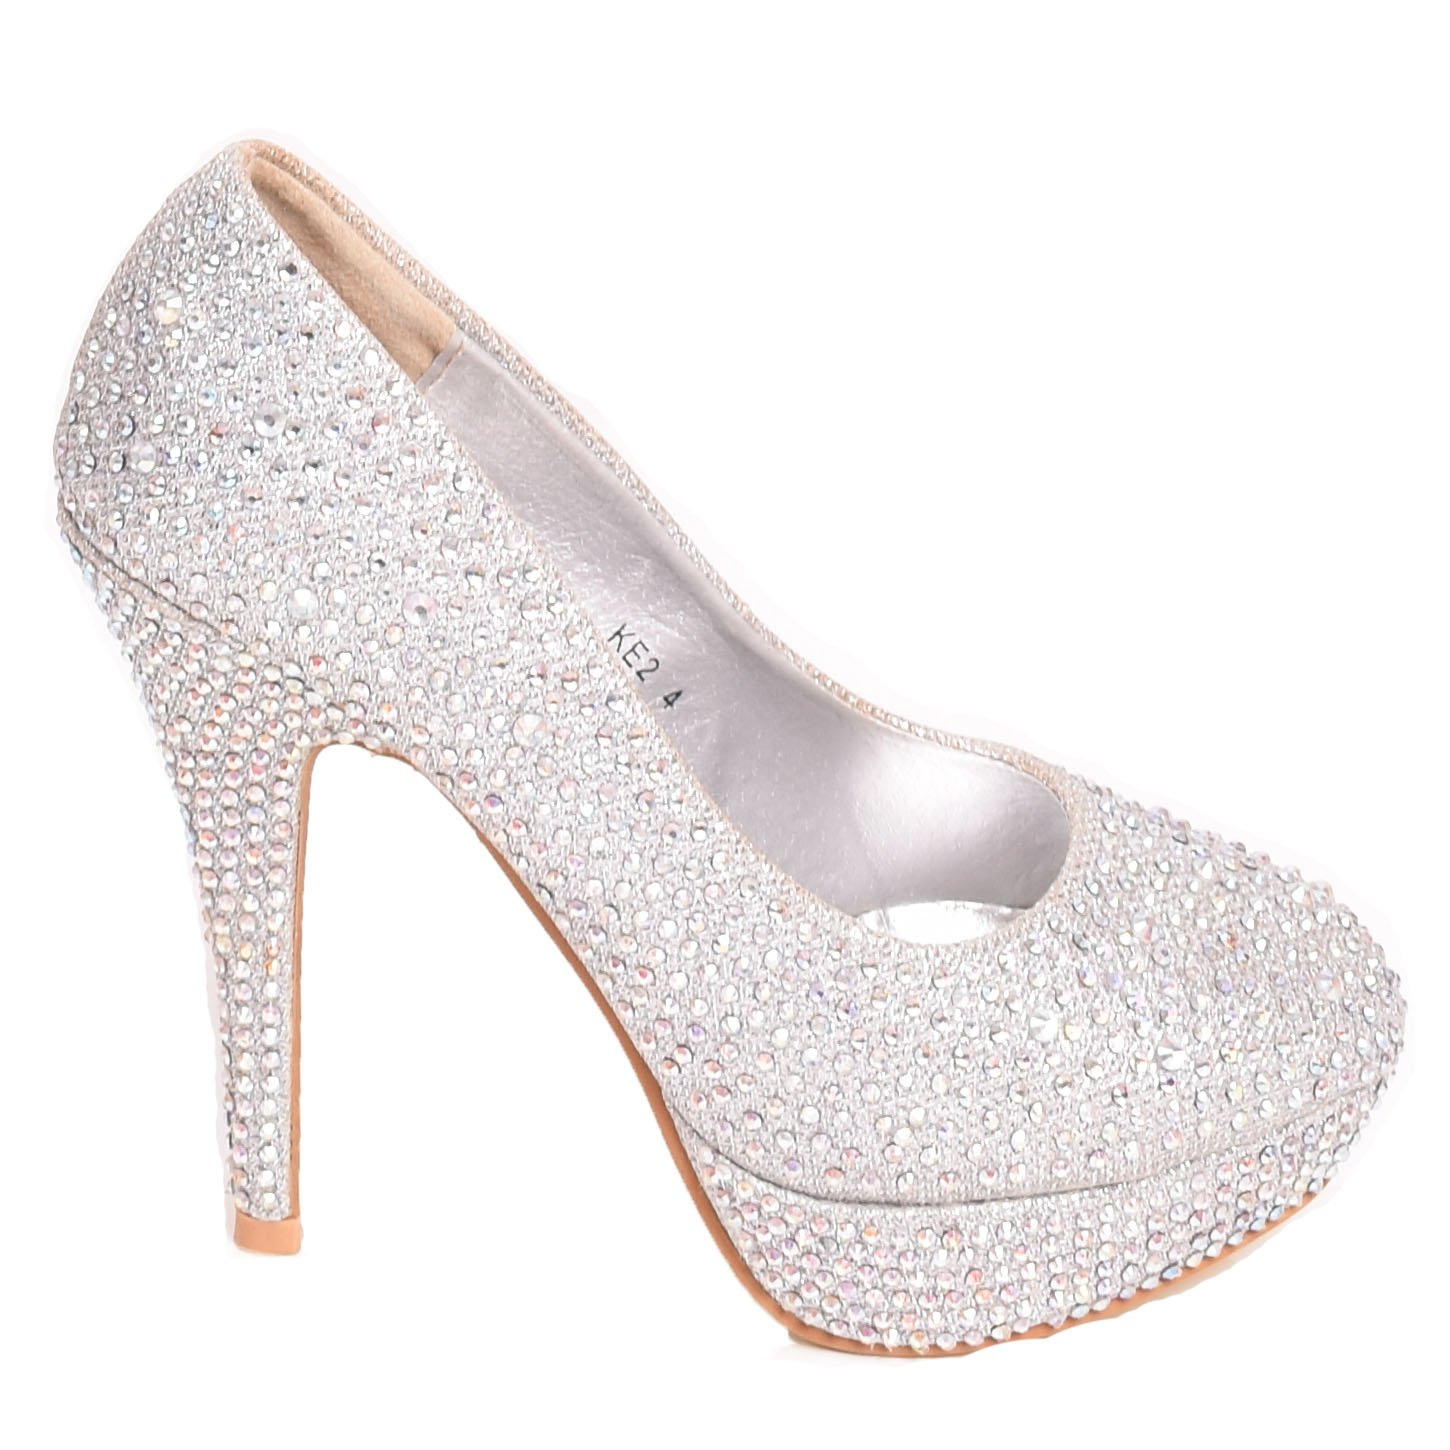 c44663f005b Solewish Ladies Womens Sparkly High Heel Evening Bridal Party Bridesmaid  Court Shoes Size  Amazon.co.uk  Shoes   Bags